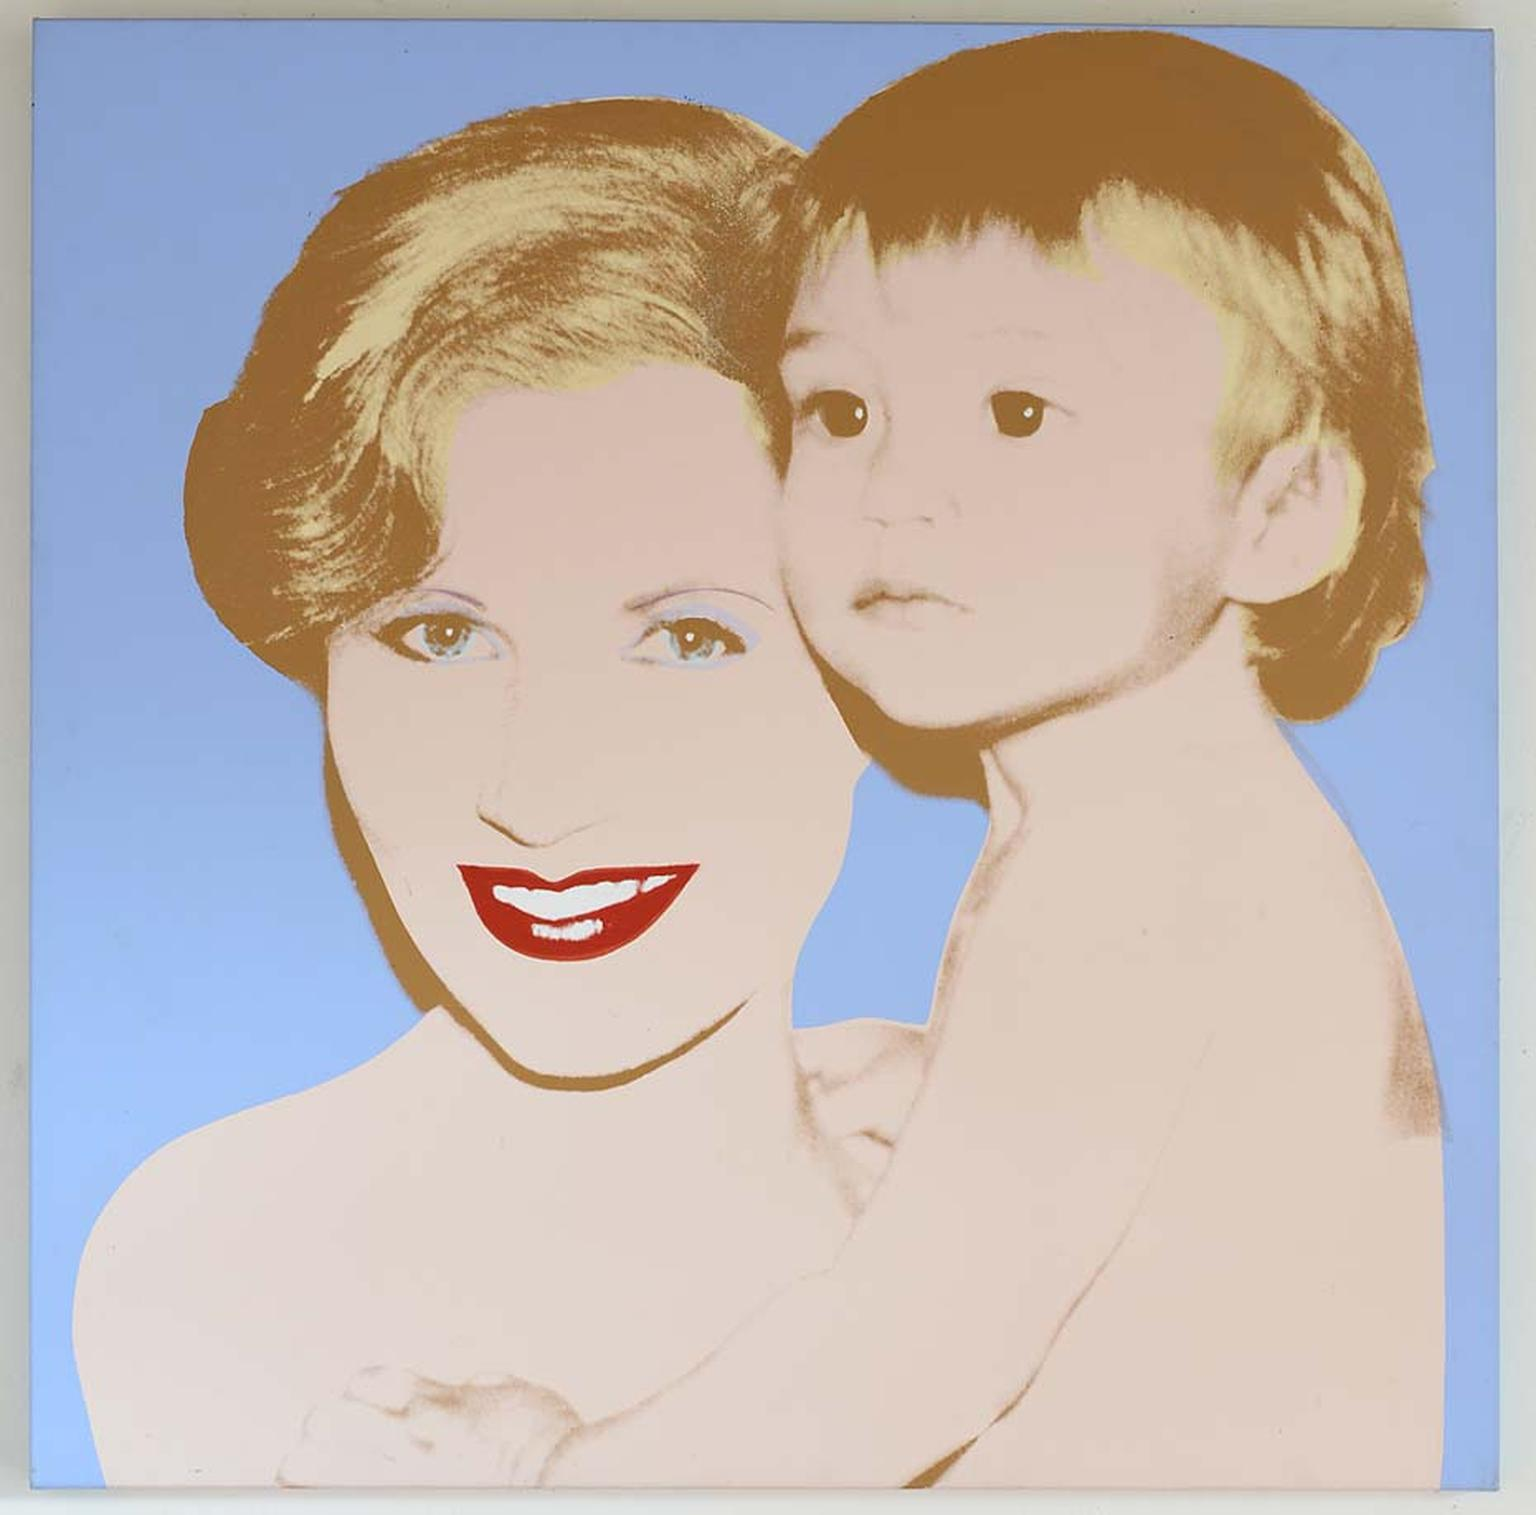 Andy Warhol was a friend of Syz and a major influence on her creations. Pictured is a Warhol painting of Syz and her son.